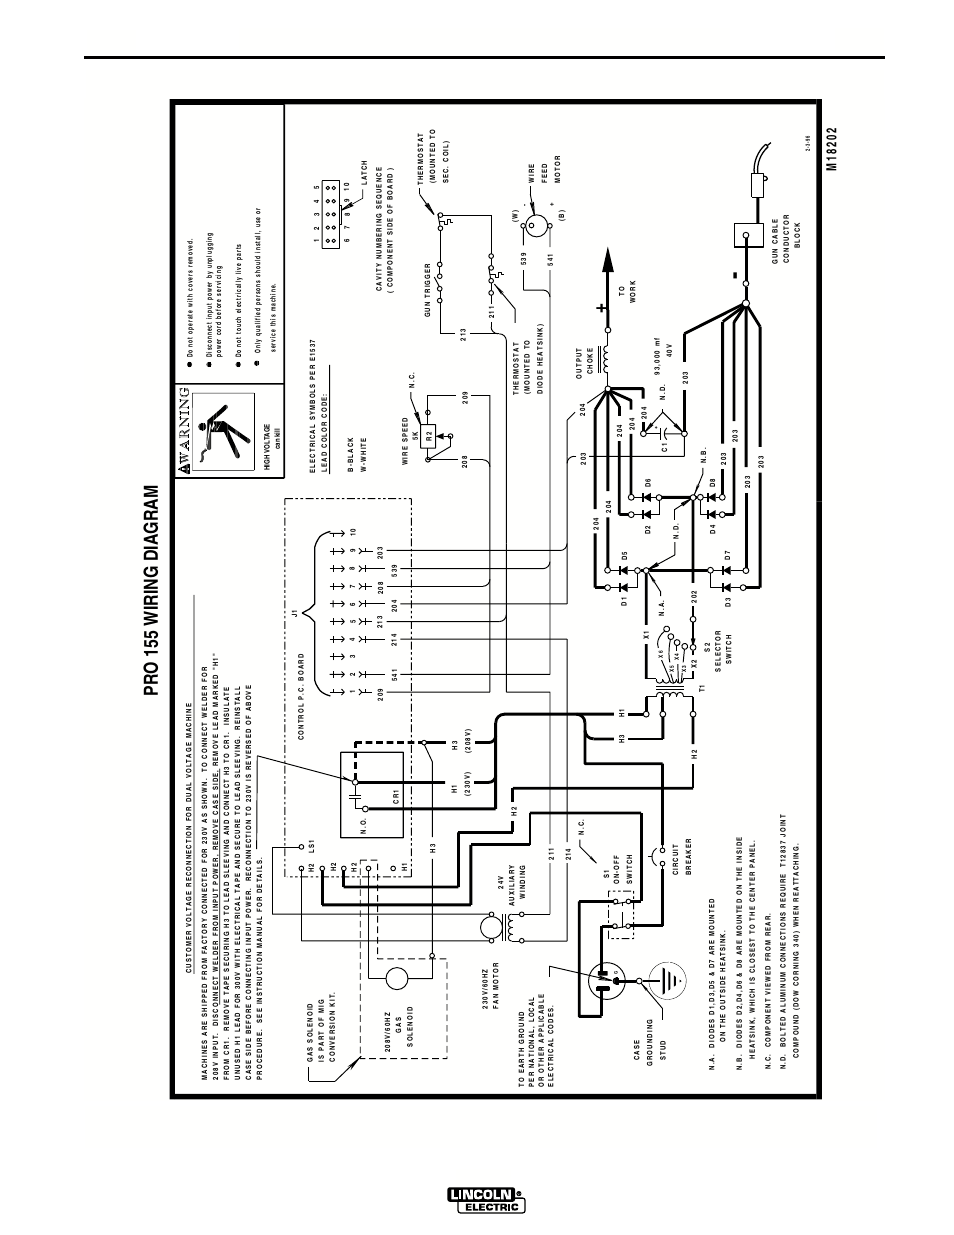 hight resolution of lincoln 140c mig welder wiring diagram lincoln auto 2011 road king wiring diagram 2011 road king wiring diagram